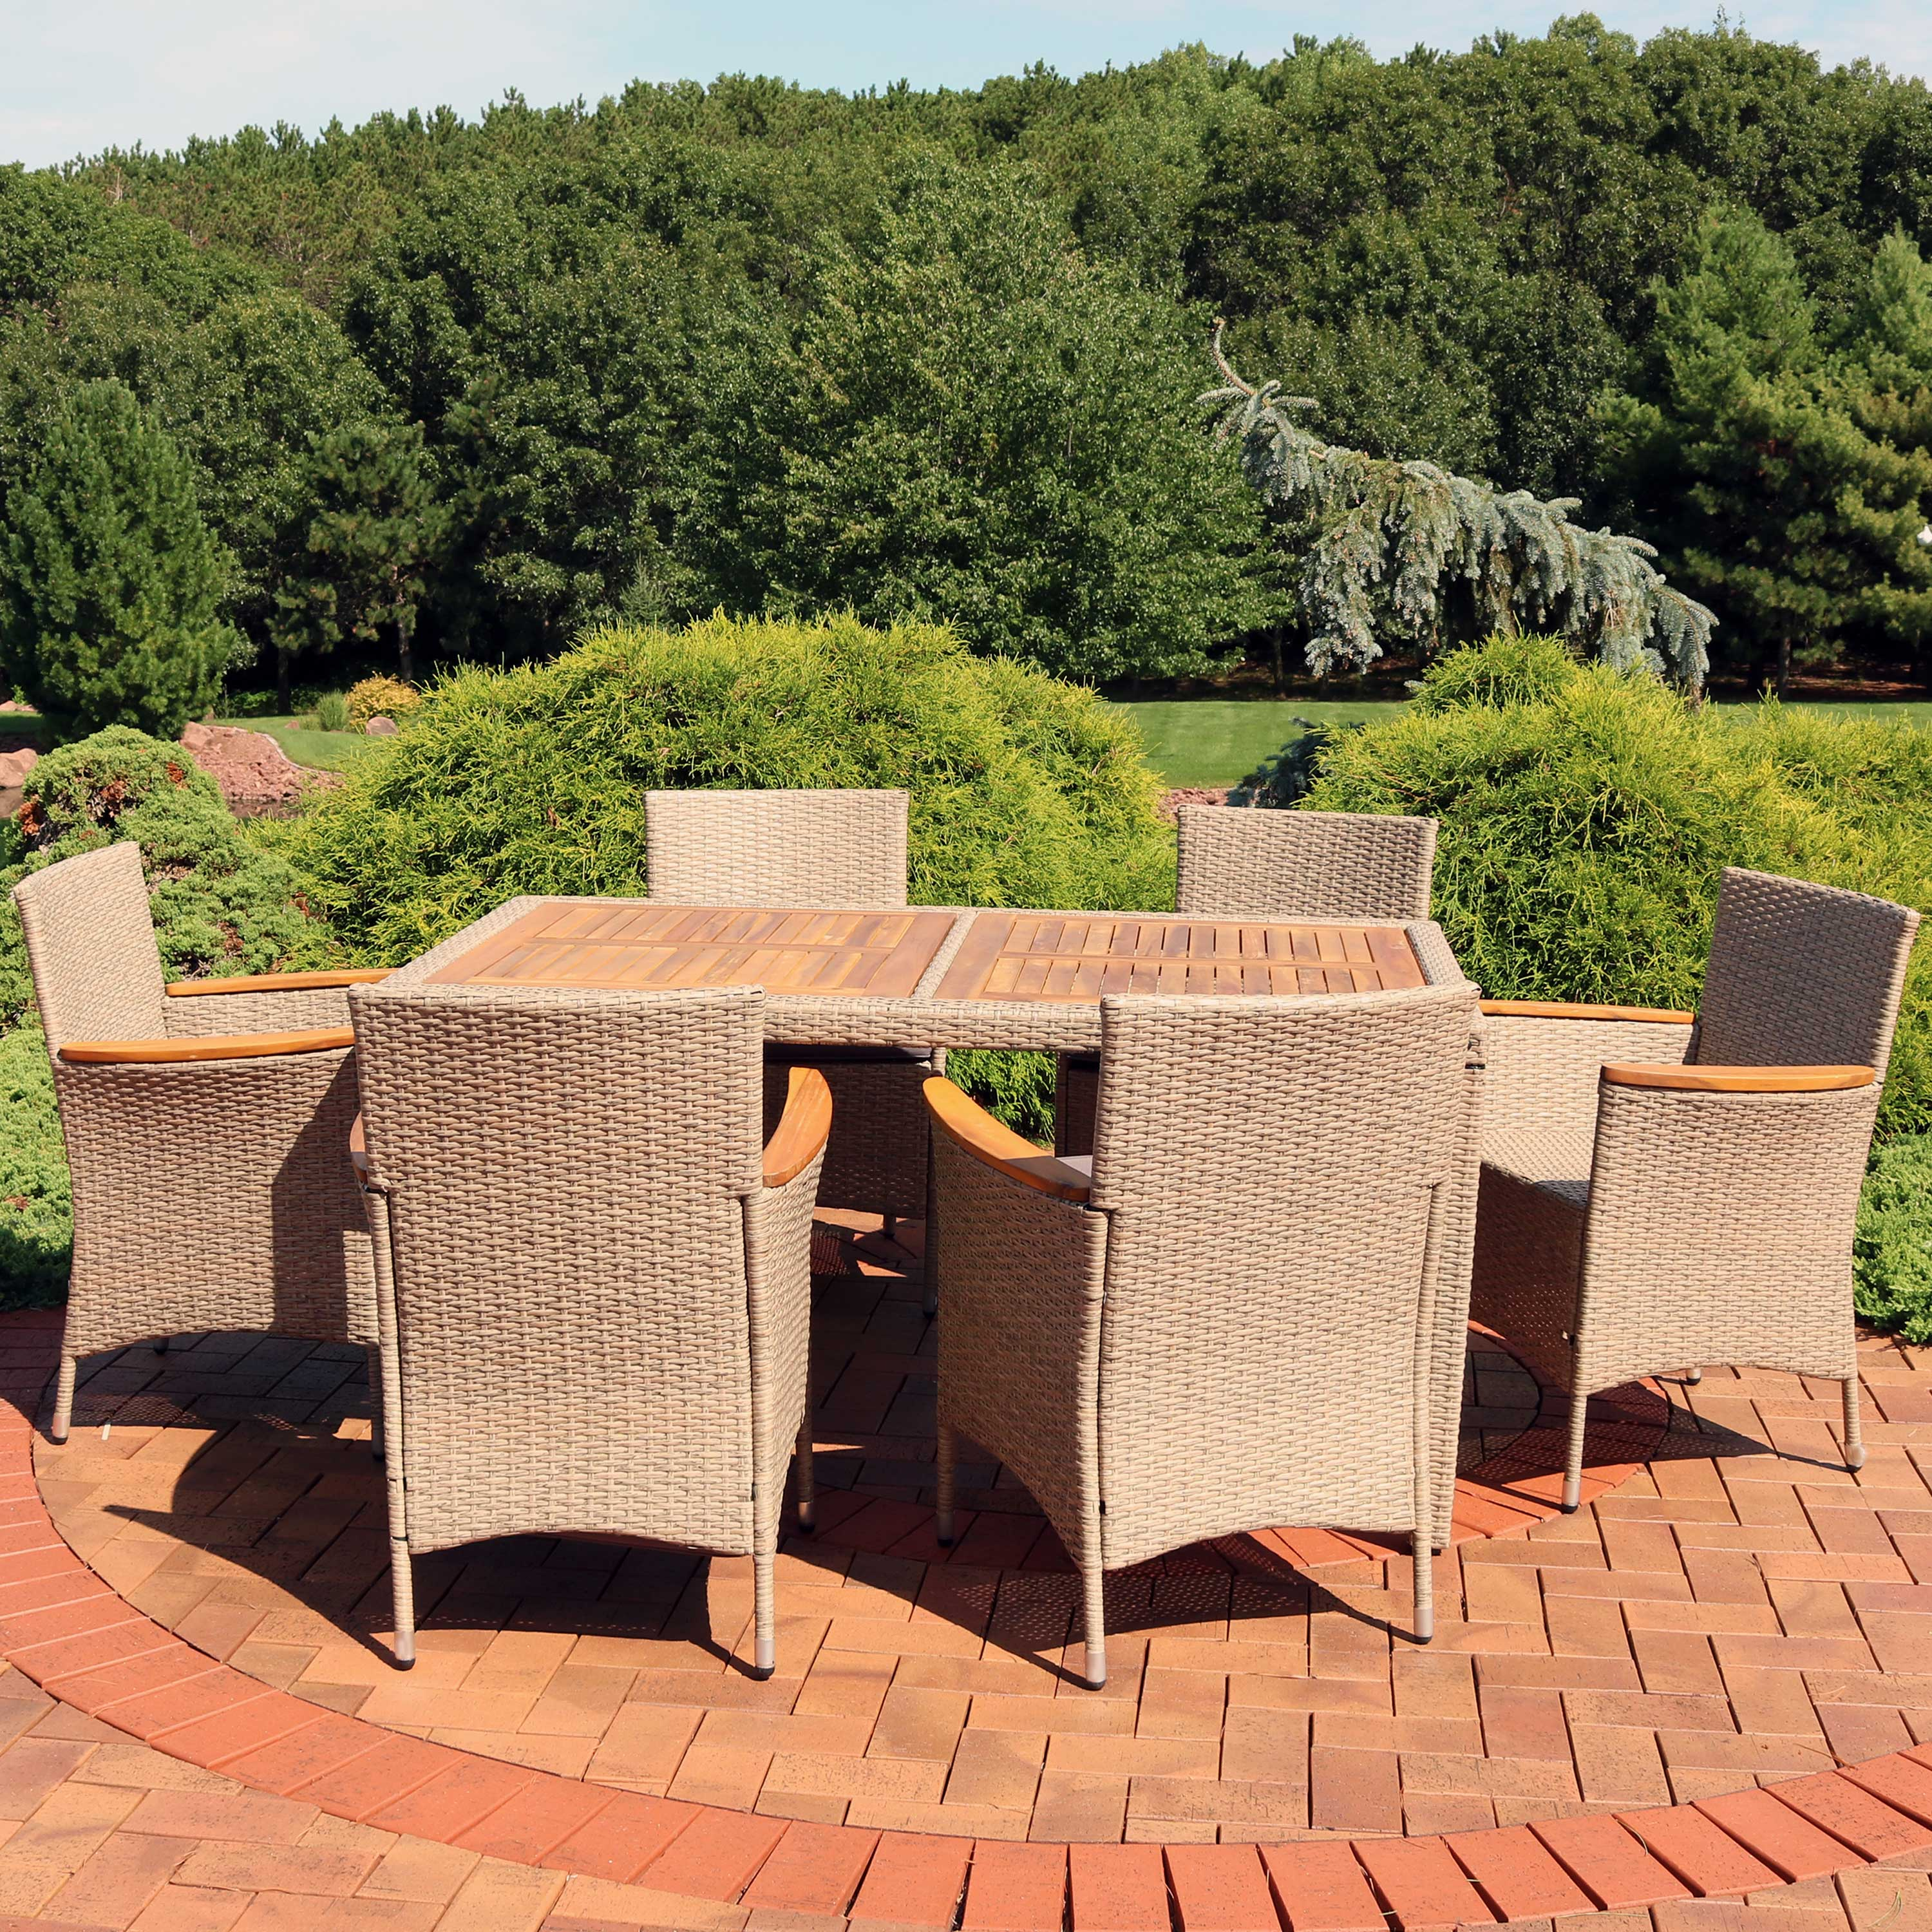 sunnydaze foxford outdoor dining set 7 piece rattan and acacia outside patio furniture 1 table and 6 chairs with 6 thick seat cushions backyard